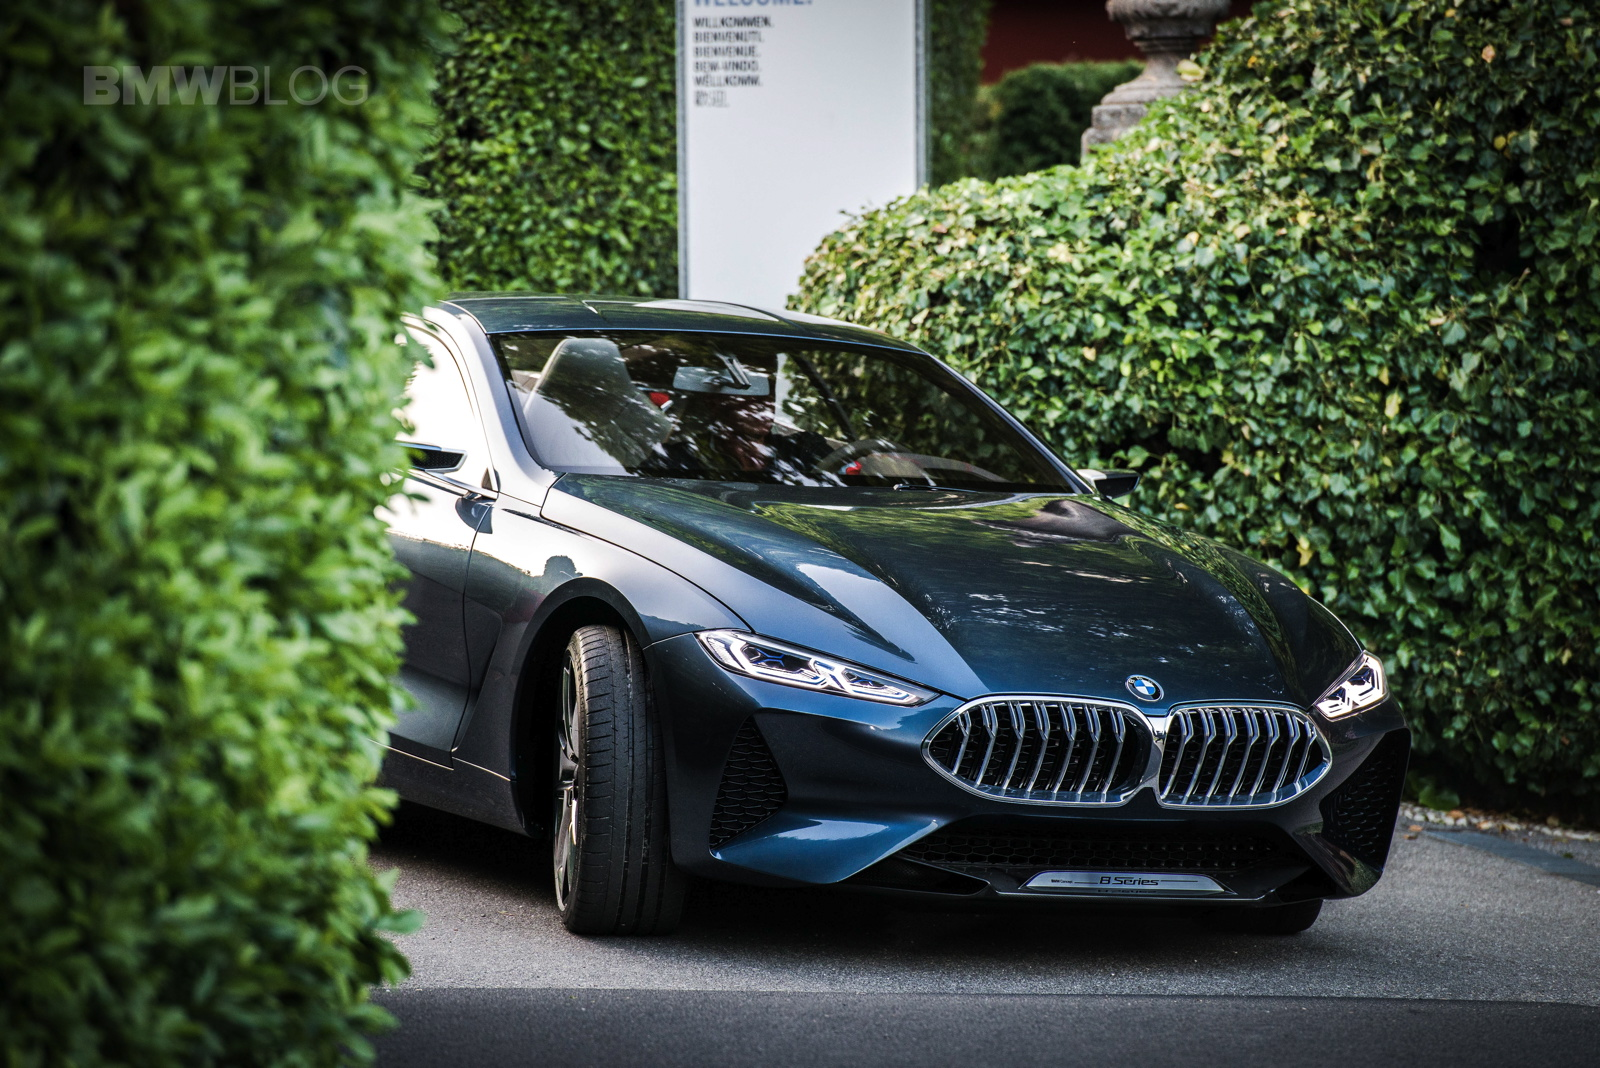 Bmw Concept 8 Series Will Be At The 2017 Goodwood Festival Of Speed